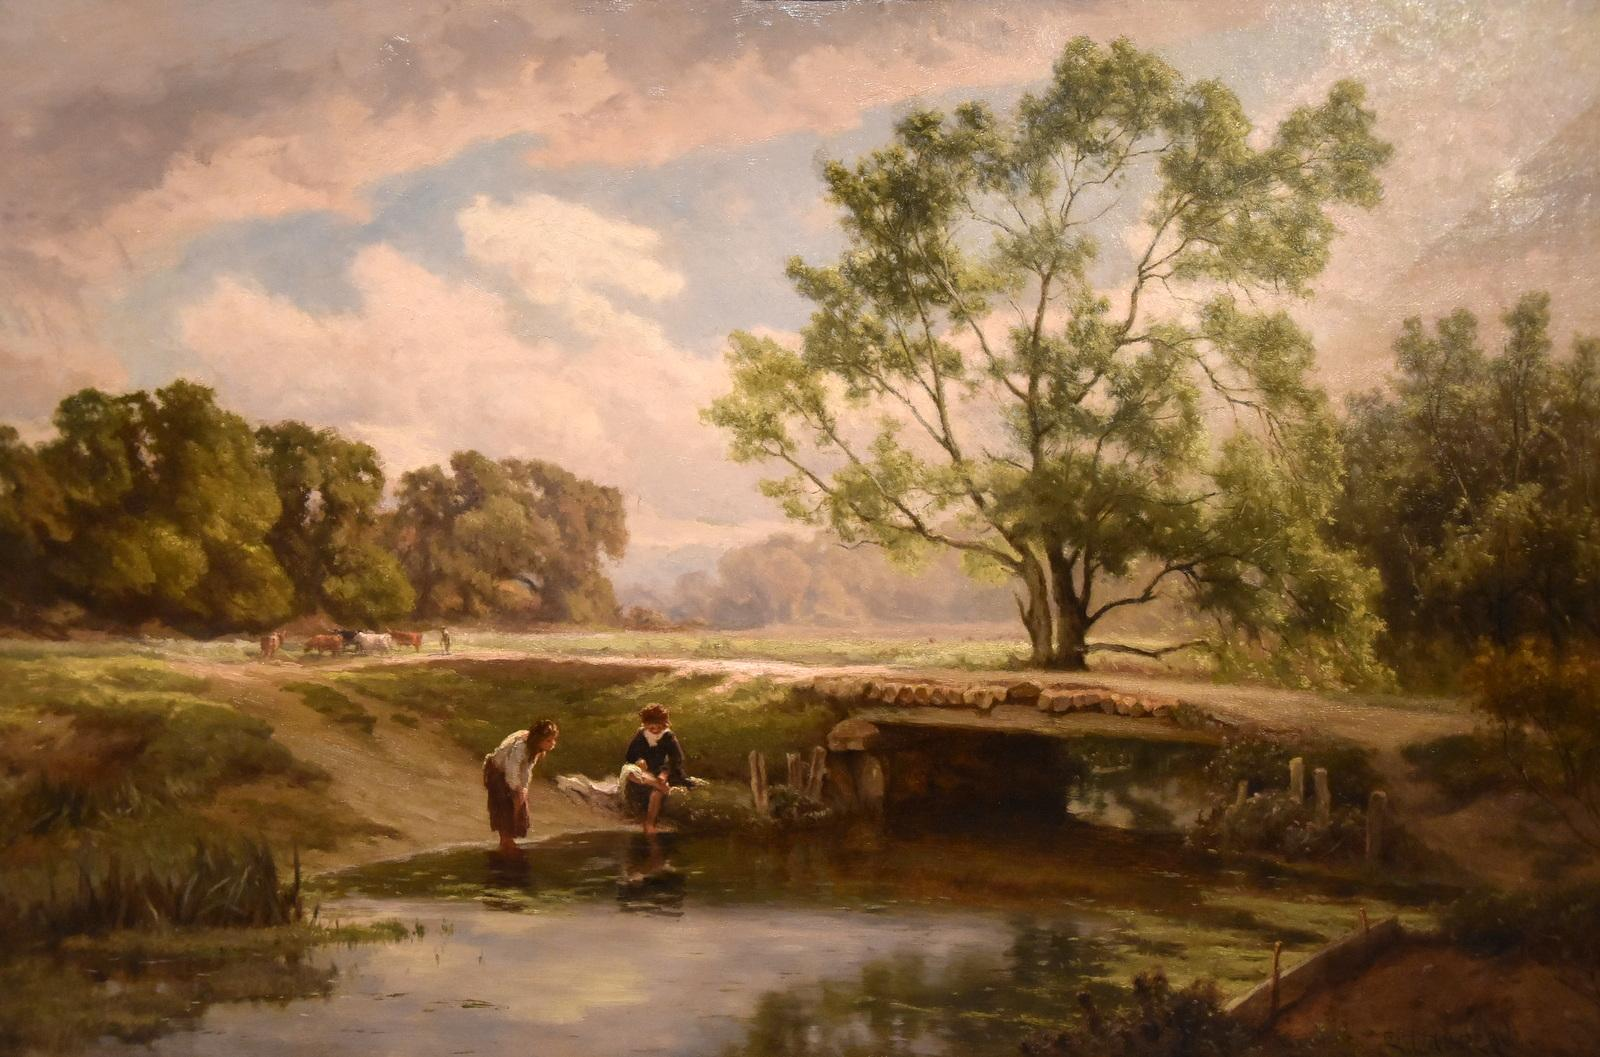 """Landscape Oil Painting """"A Country Footbridge"""" by Edward Holder"""